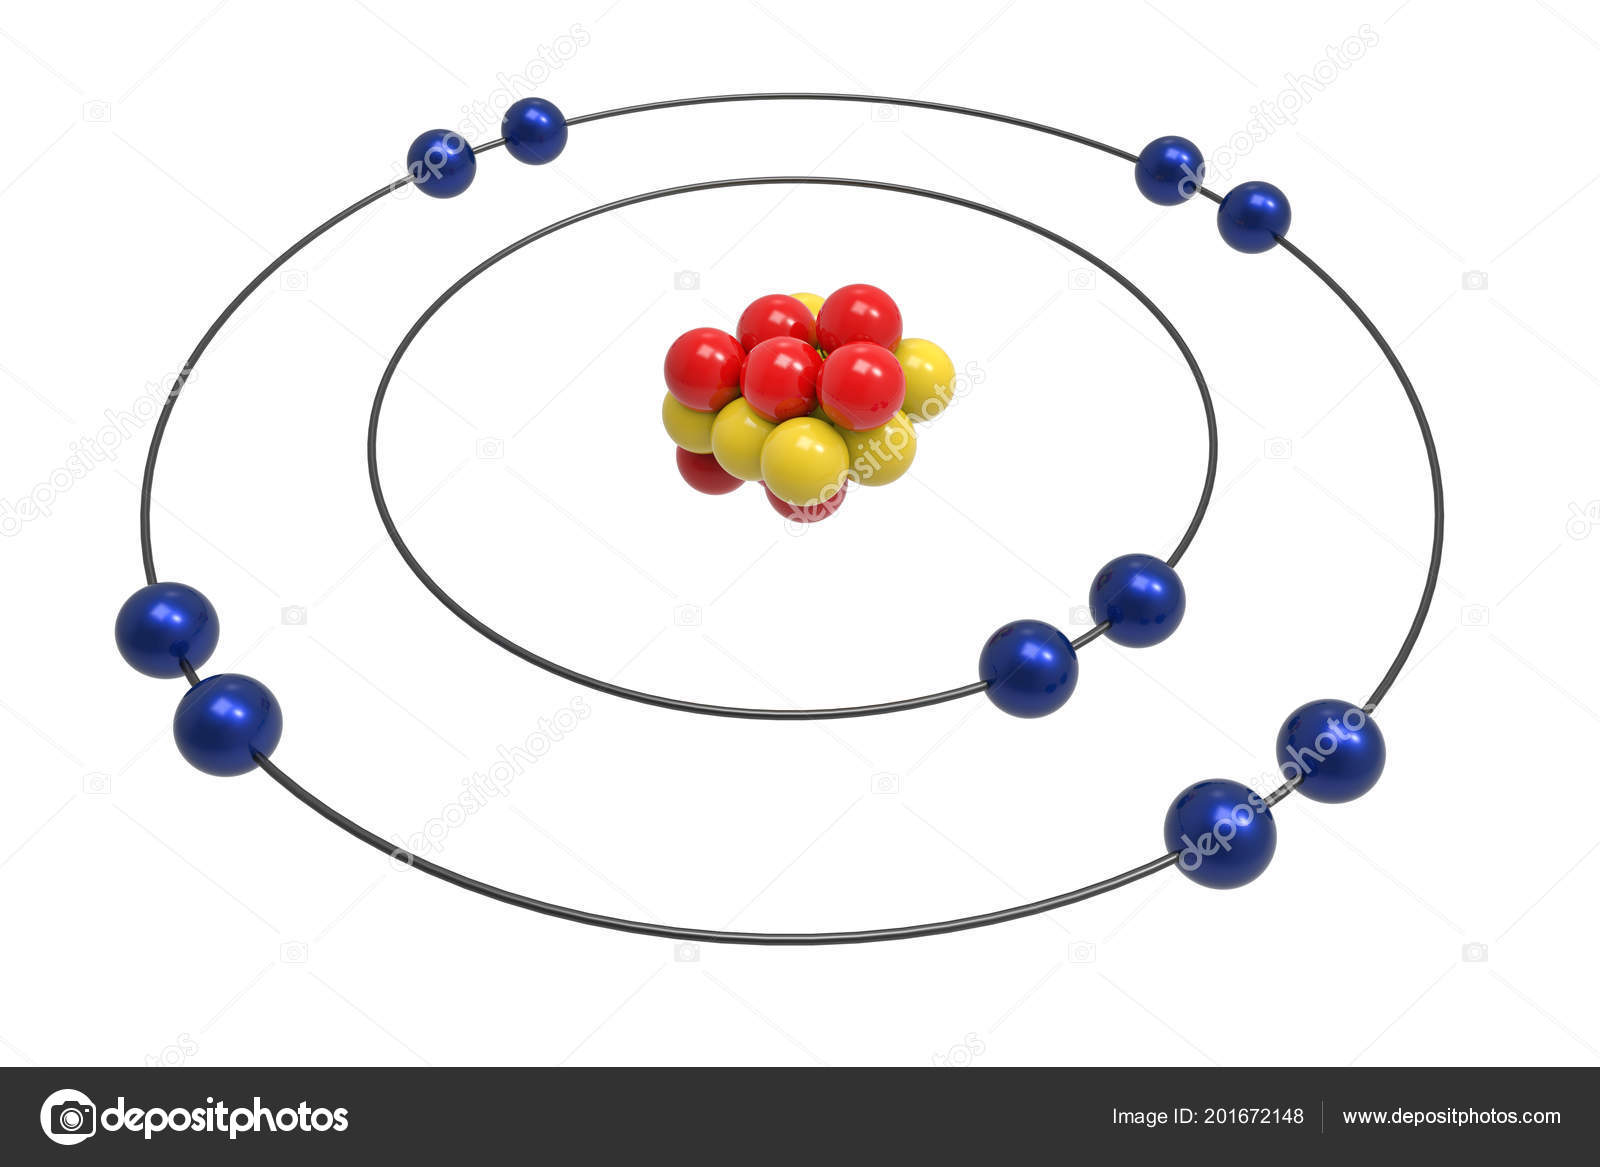 Bor diagram neon trusted wiring diagrams bohr model neon atom proton neutron electron science chemical rh depositphotos com phosphorus diagram chlorine diagram ccuart Image collections